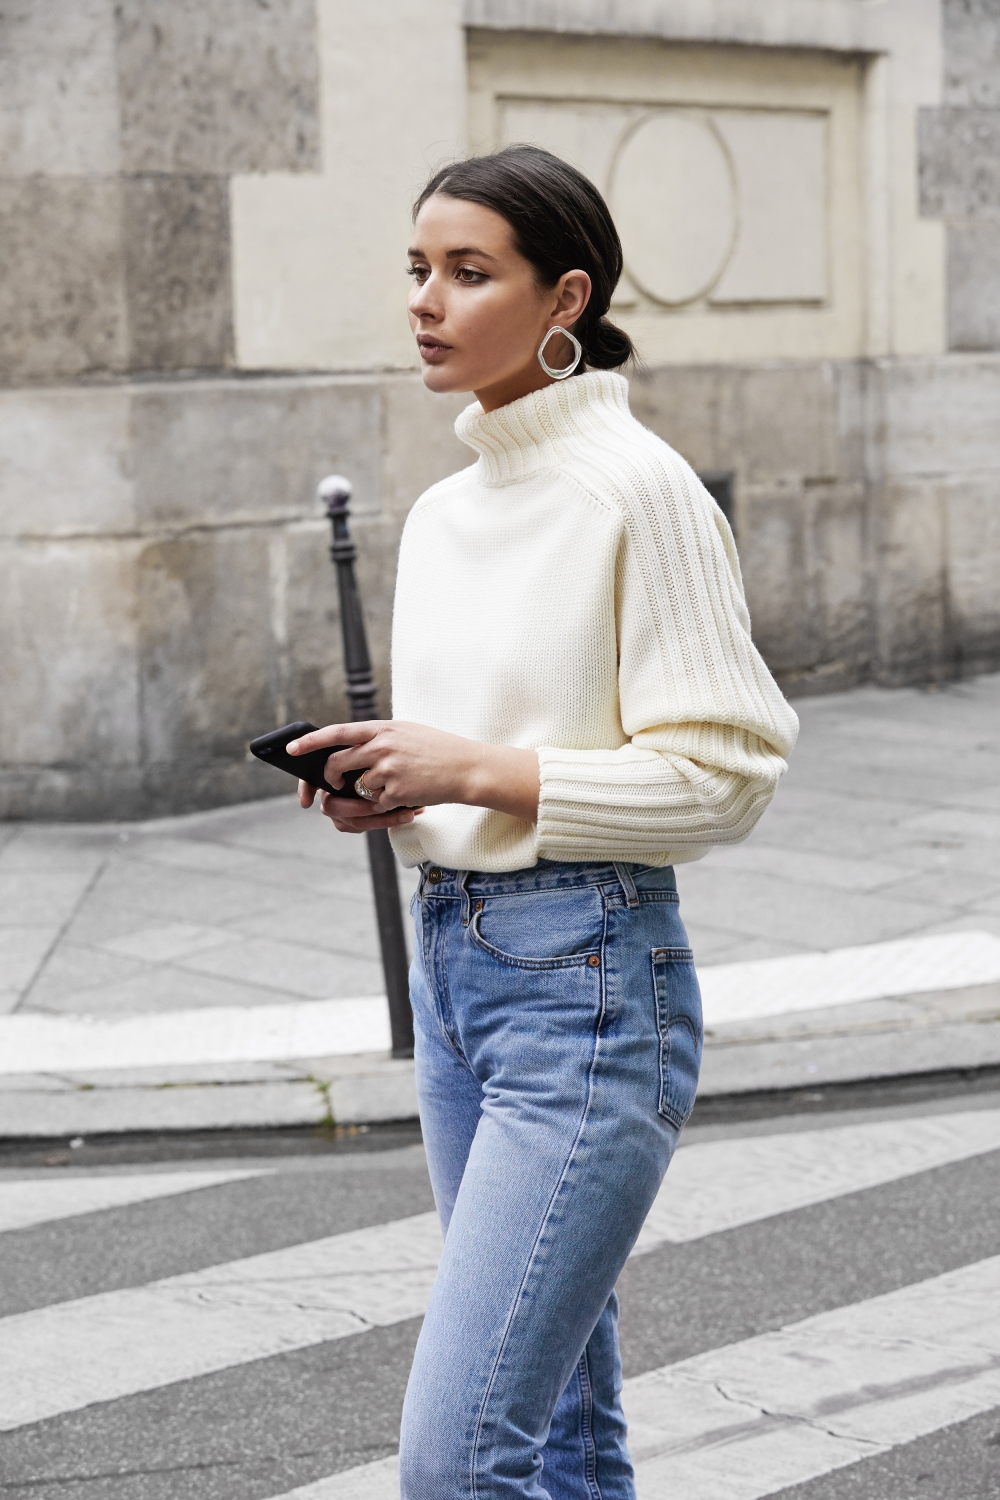 This Stylish Denim Outfit Is a No-Brainer for Winter — Harper & Harley's Sara Crampton in hoop earrings, turtleneck sweater, and Levi's jeans